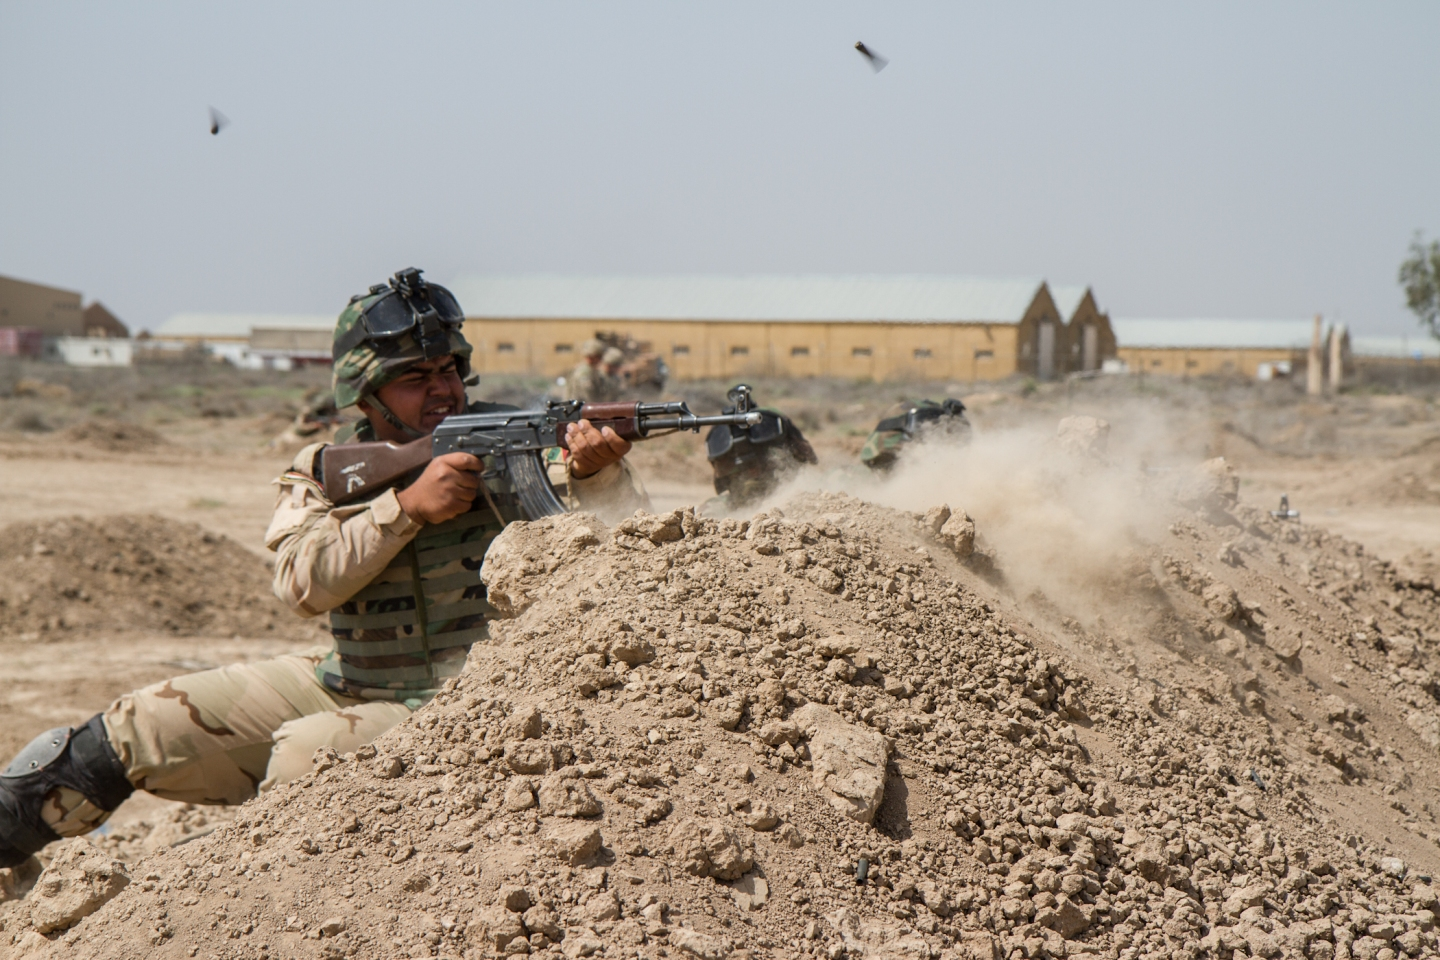 Iraqi soldiers trained with members of the 3rd Brigade Combat Team, 82nd Airborne Division, at Camp Taji, Iraq. The 3rd Bde., 82nd Abn. Div., was deployed to Iraq as part of Combined Joint Task Force - Operation Inherent Resolve to advise and assist Iraqi Security Forces in their fight against the Islamic State of Iraq and the Levant. Iraqi soldiers learned tactics and techniques from U.S. Soldiers during a six-week basic training course, and more complicated tactics during a three-week advanced training course. (U.S. Army photo by Sgt. Cody Quinn, CJTF - OIR Public Affairs)